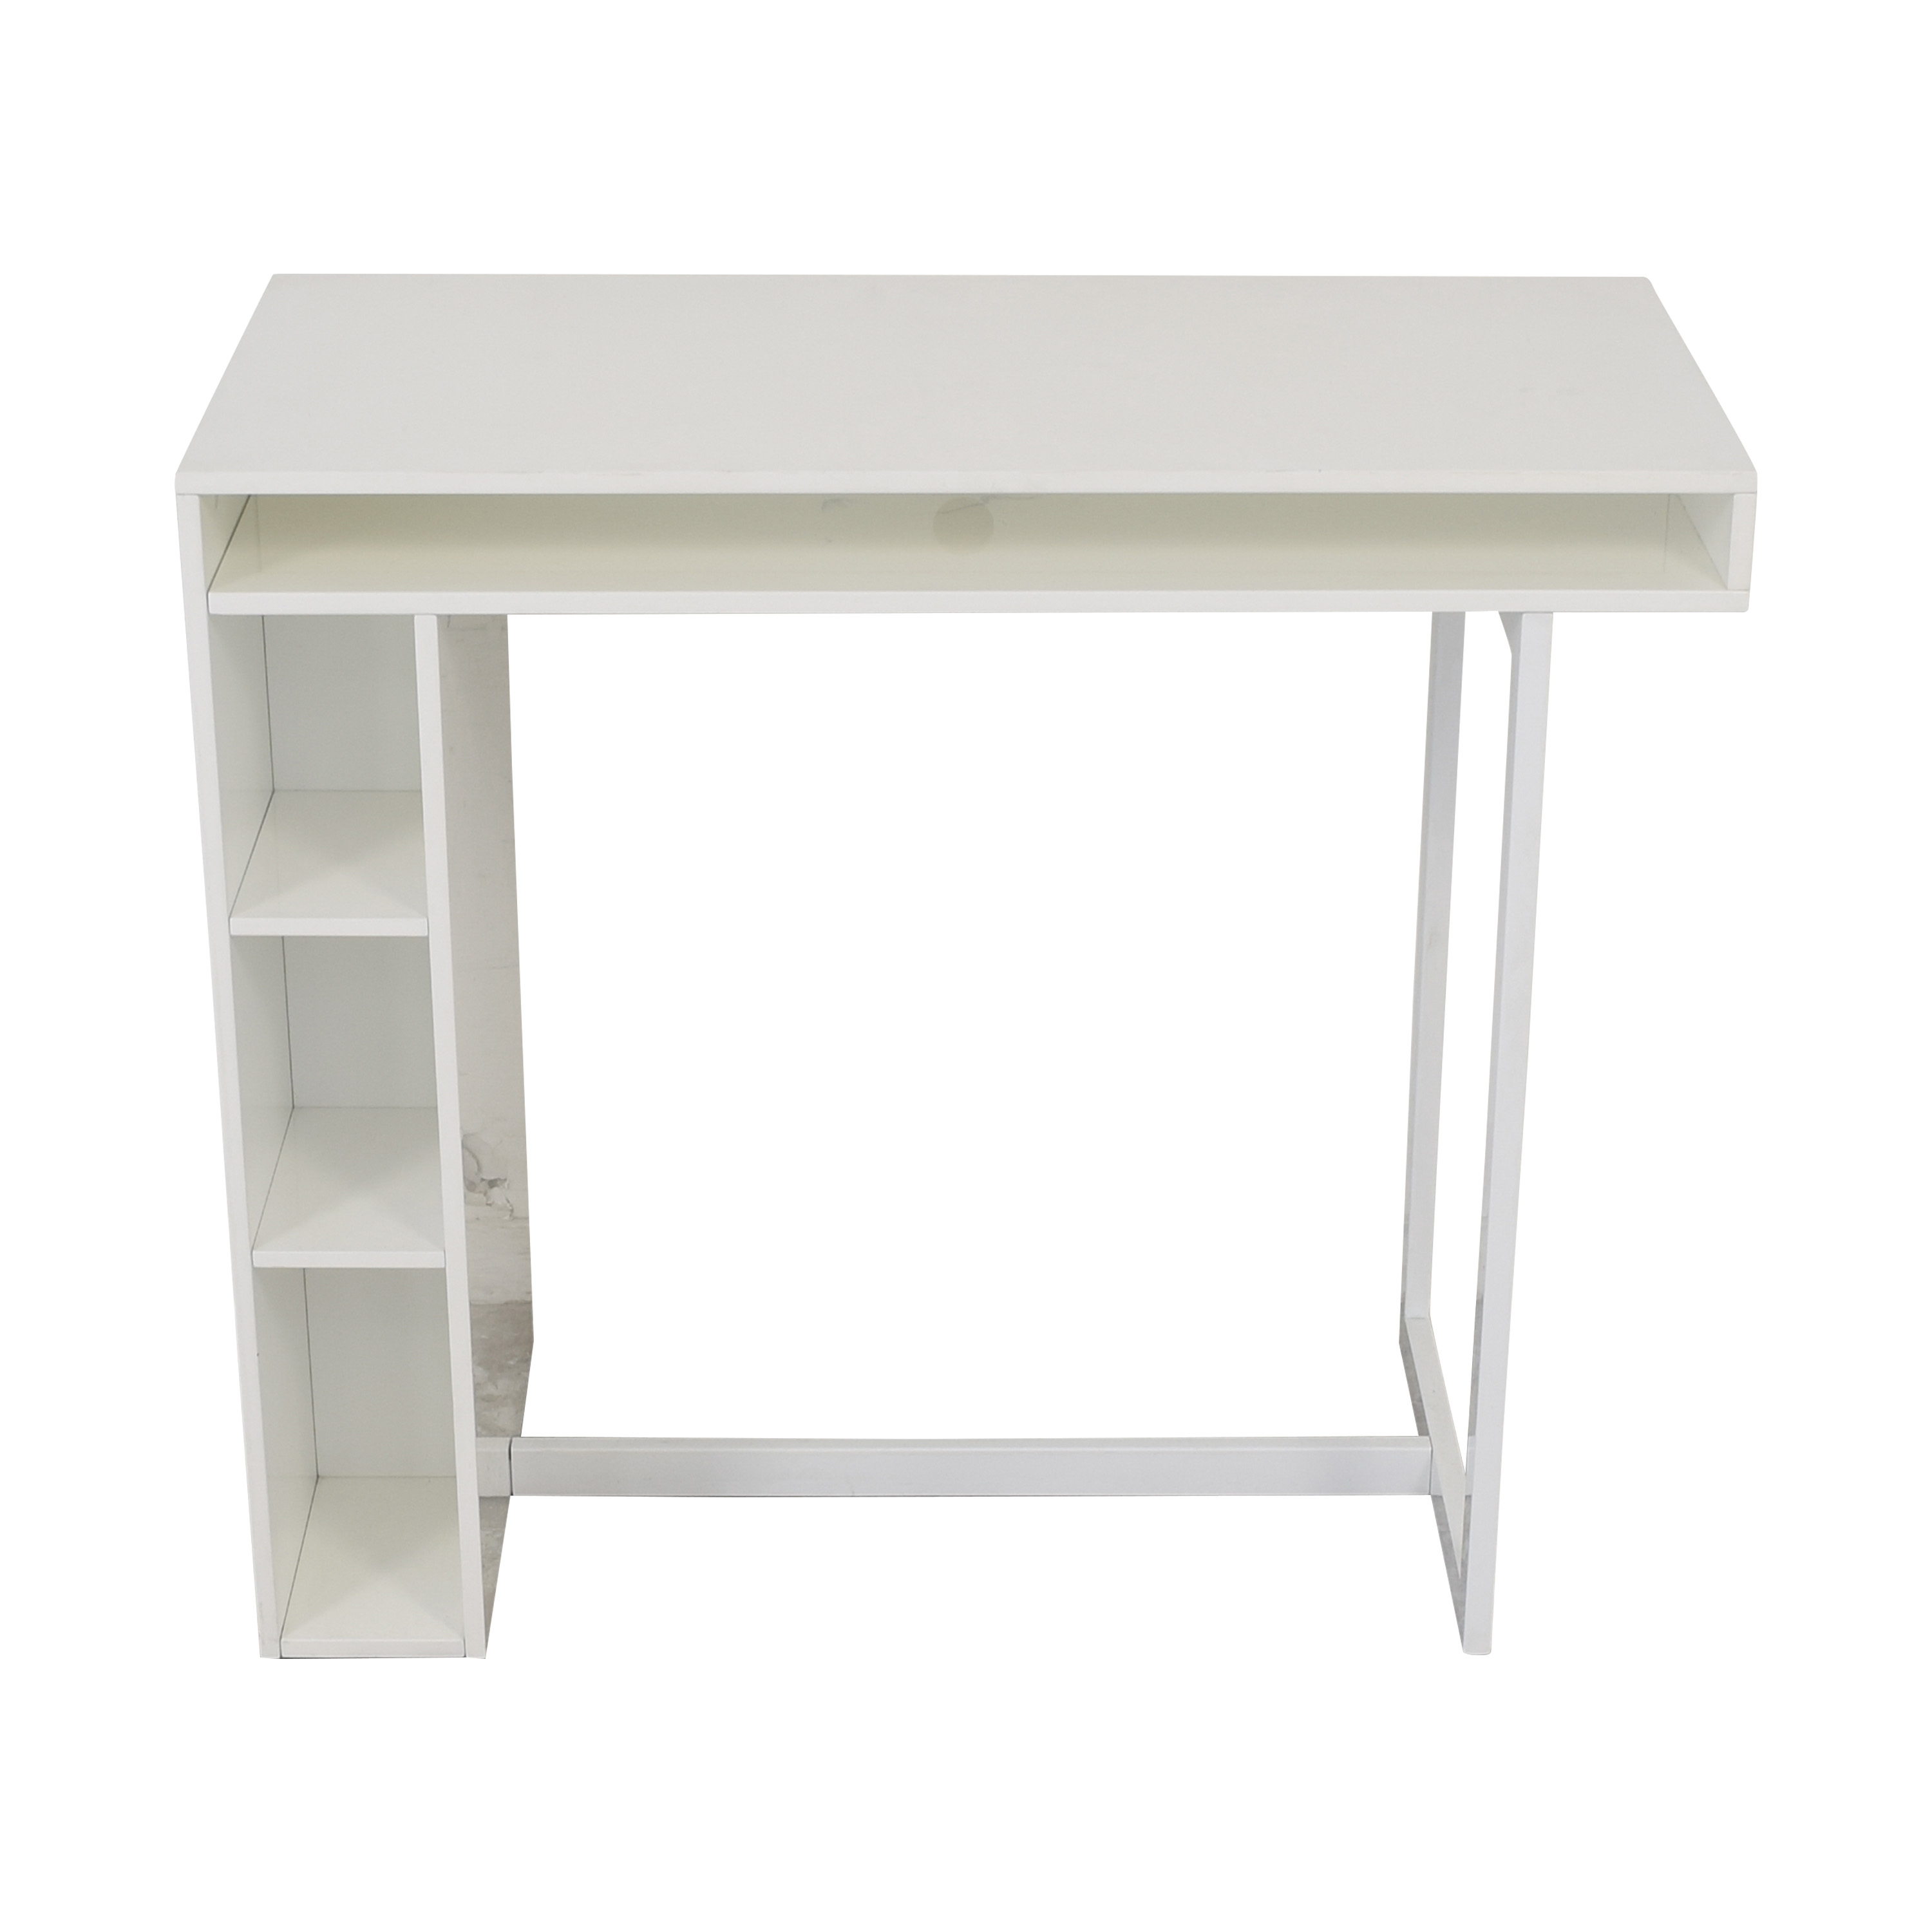 CB2 Counter Height Desk sale